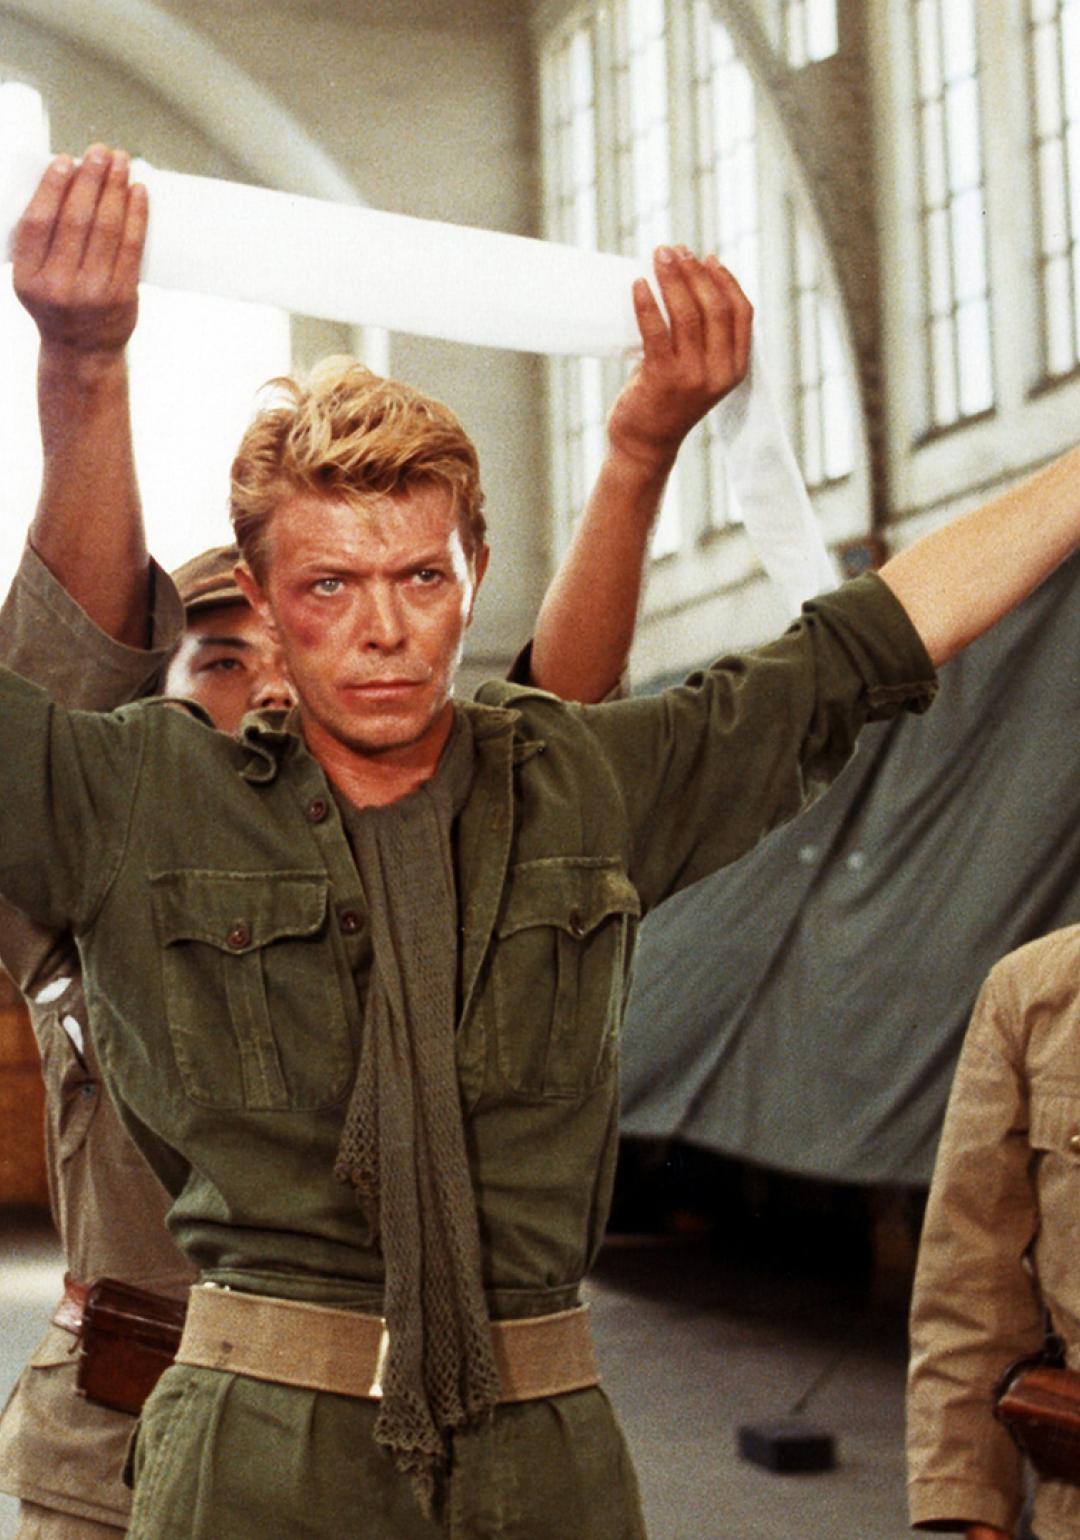 David Bowie in Merry Christmas, Mr. Lawrence.